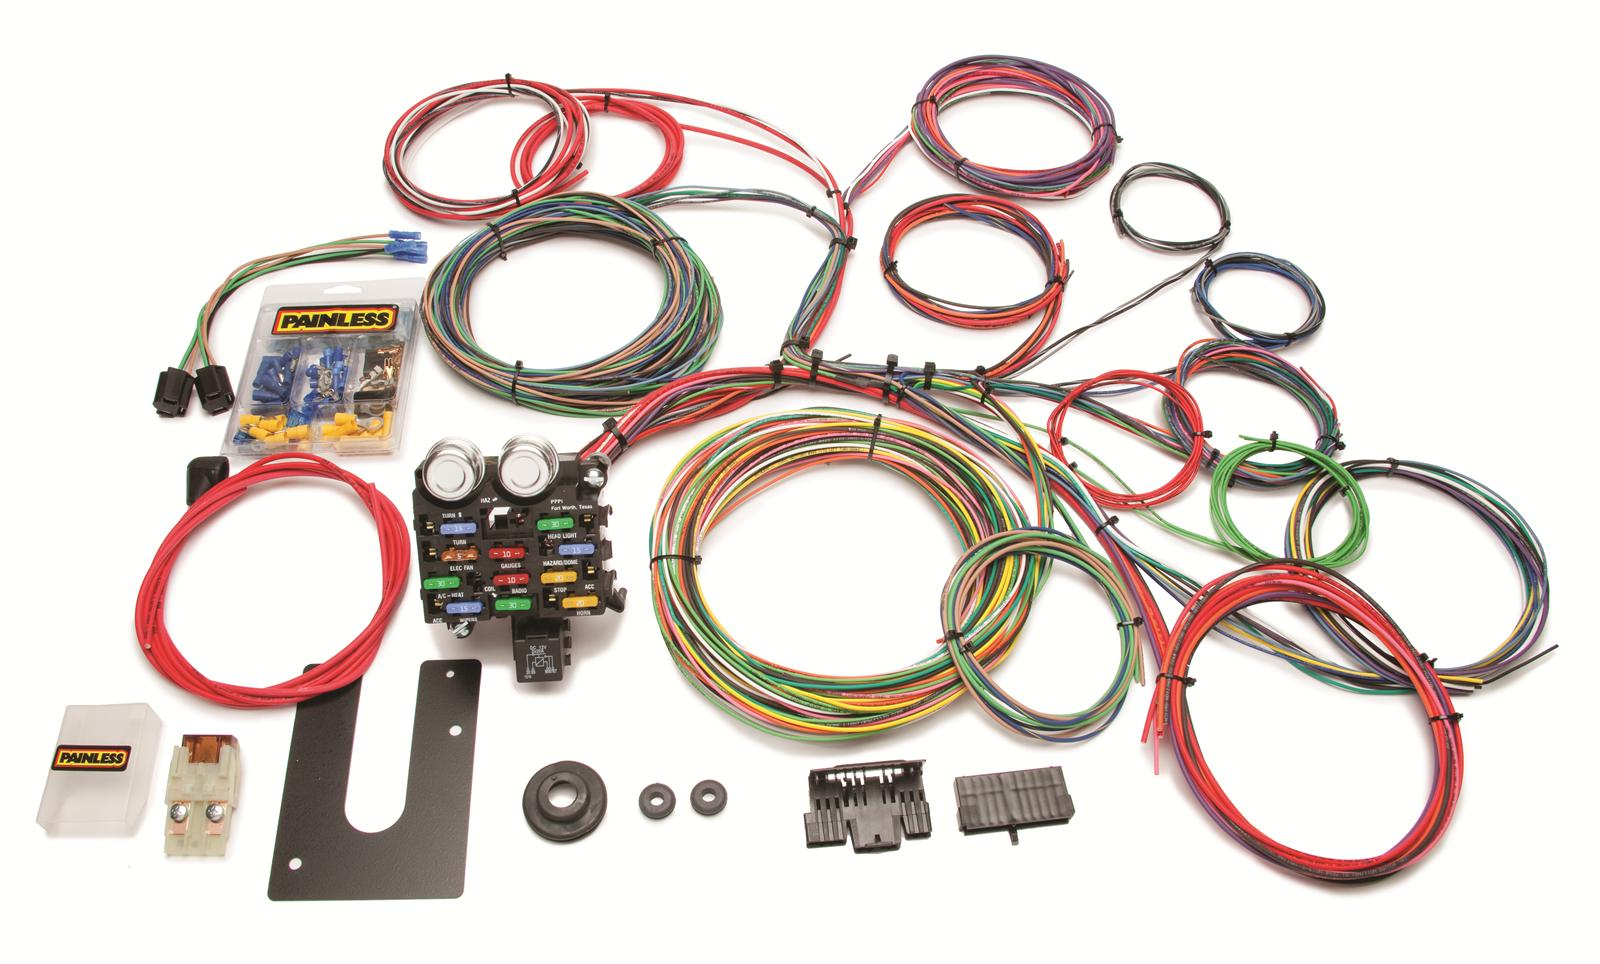 painless performance 21 circuit universal harnesses 10102 free rh summitracing com Painless Wiring for Old Cars and Trucks Painless GM Column Wiring Diagram